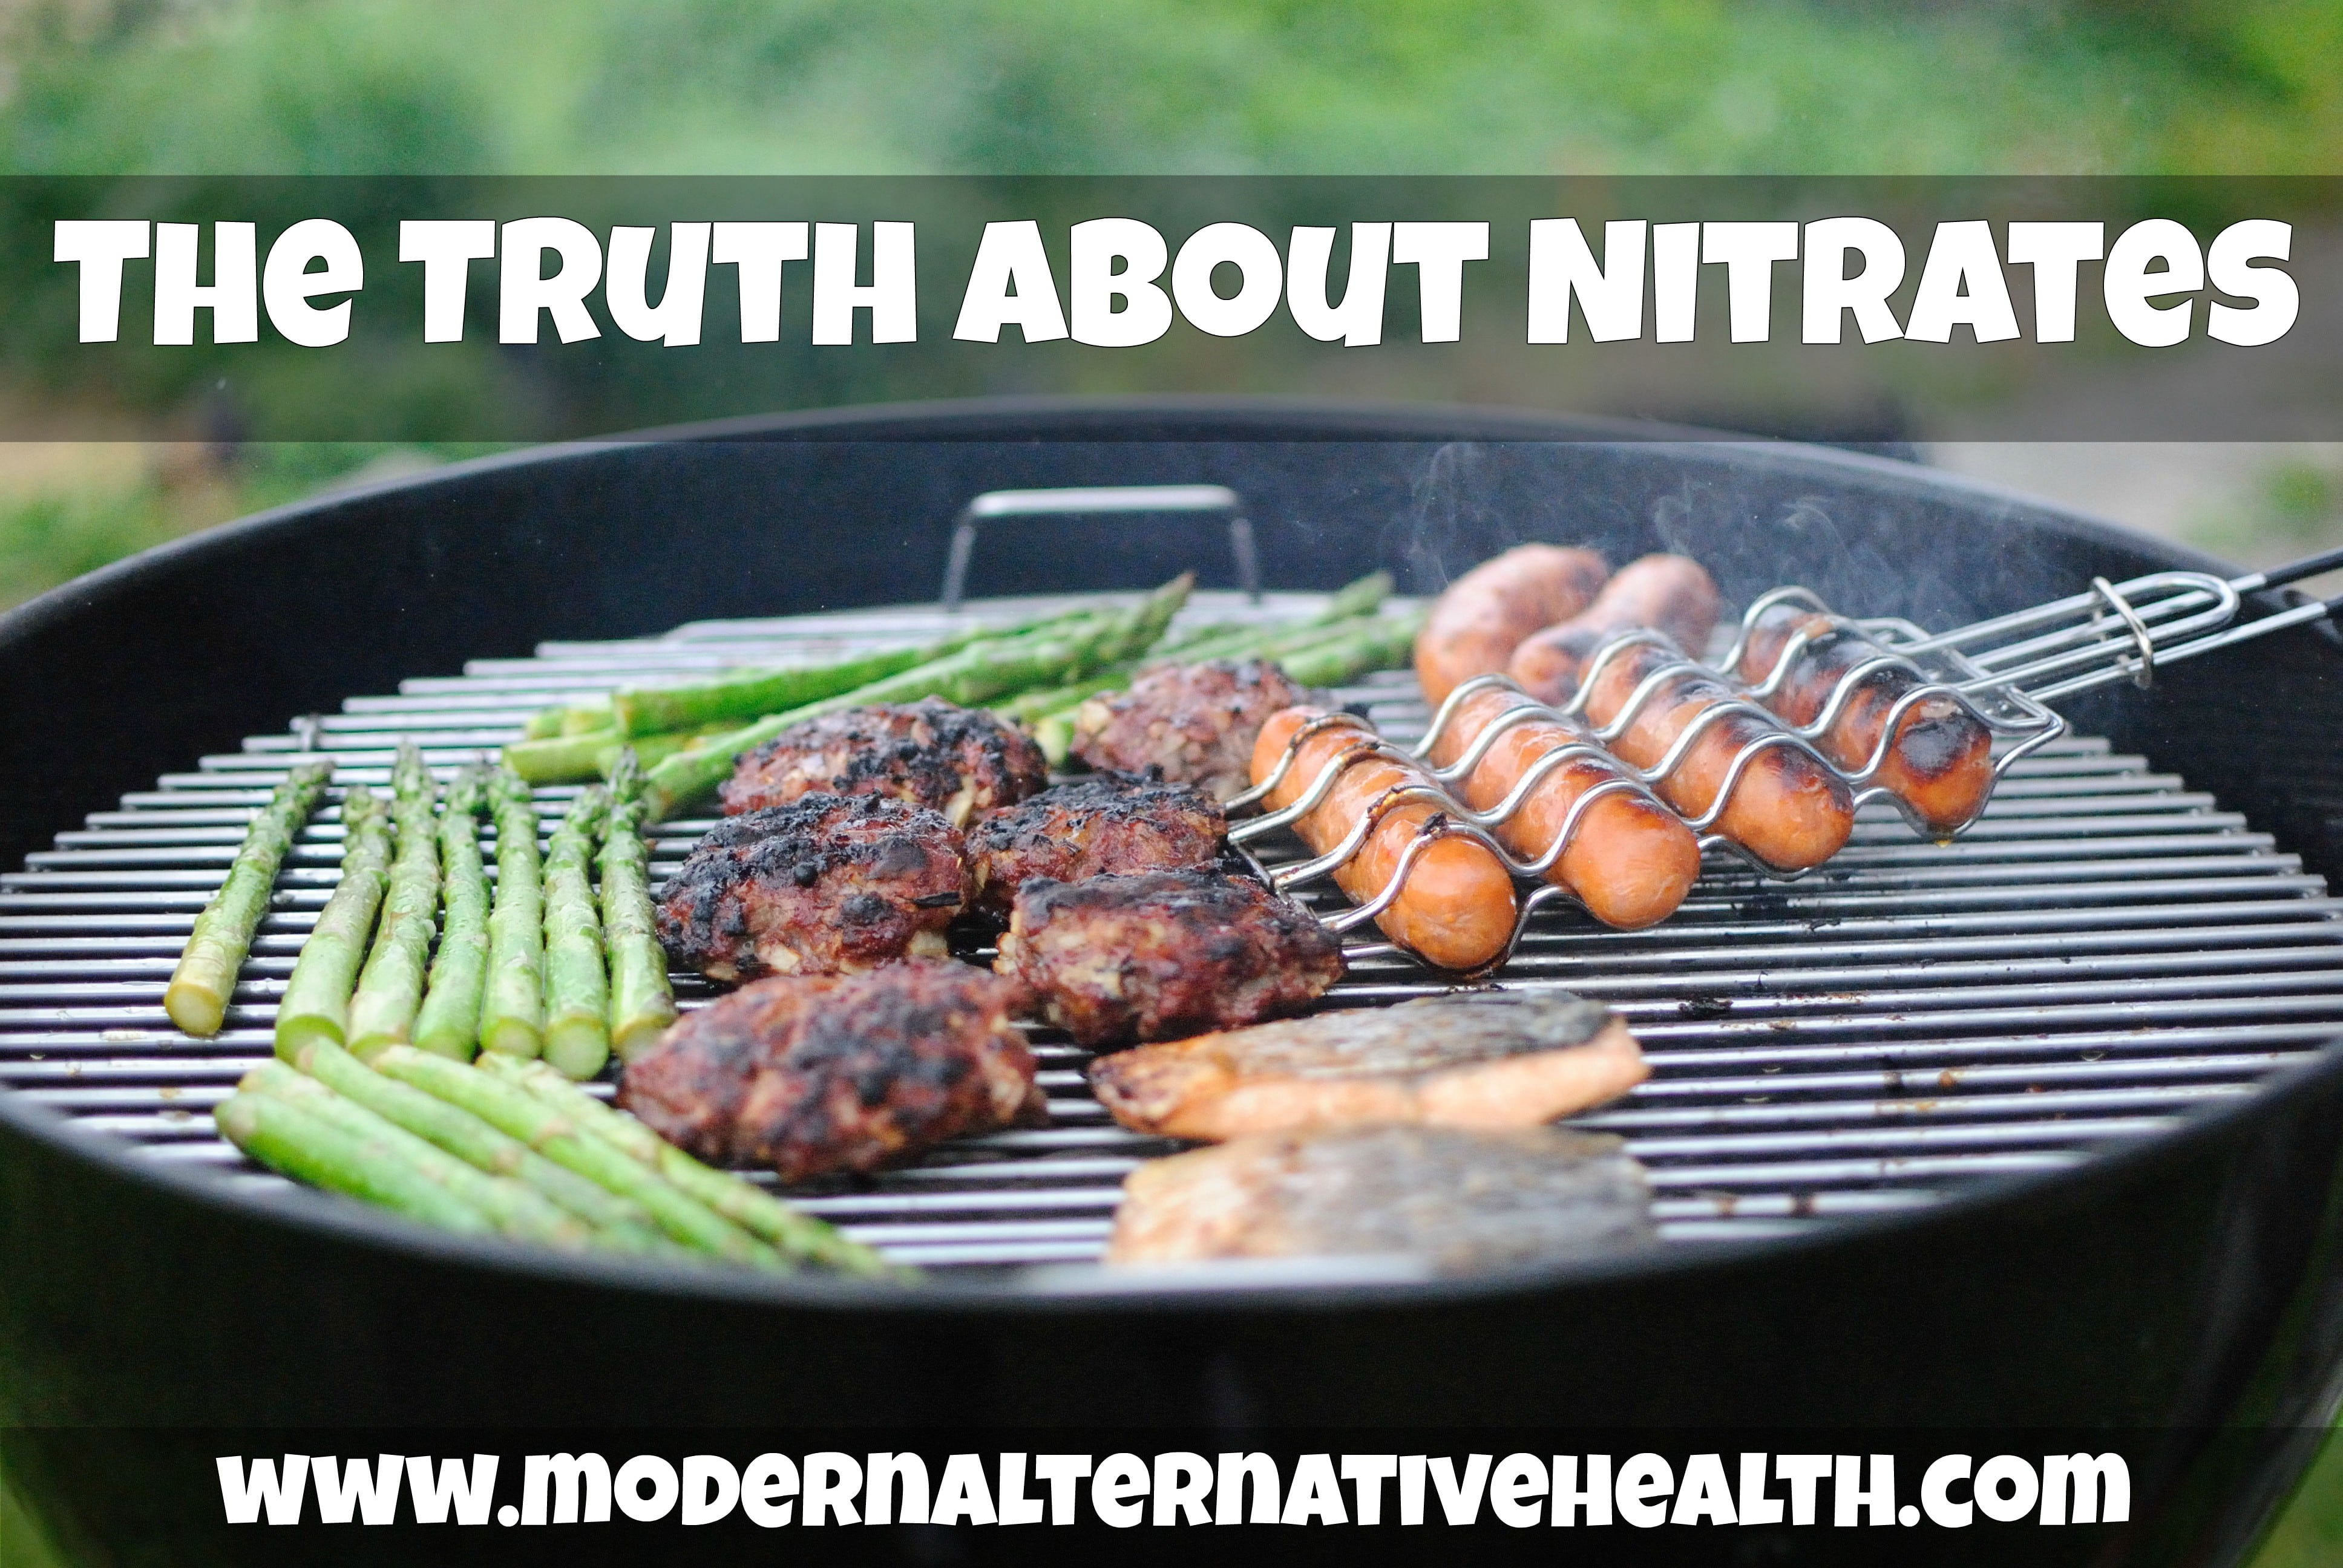 The Truth About Nitrates: 5 Facts to Know